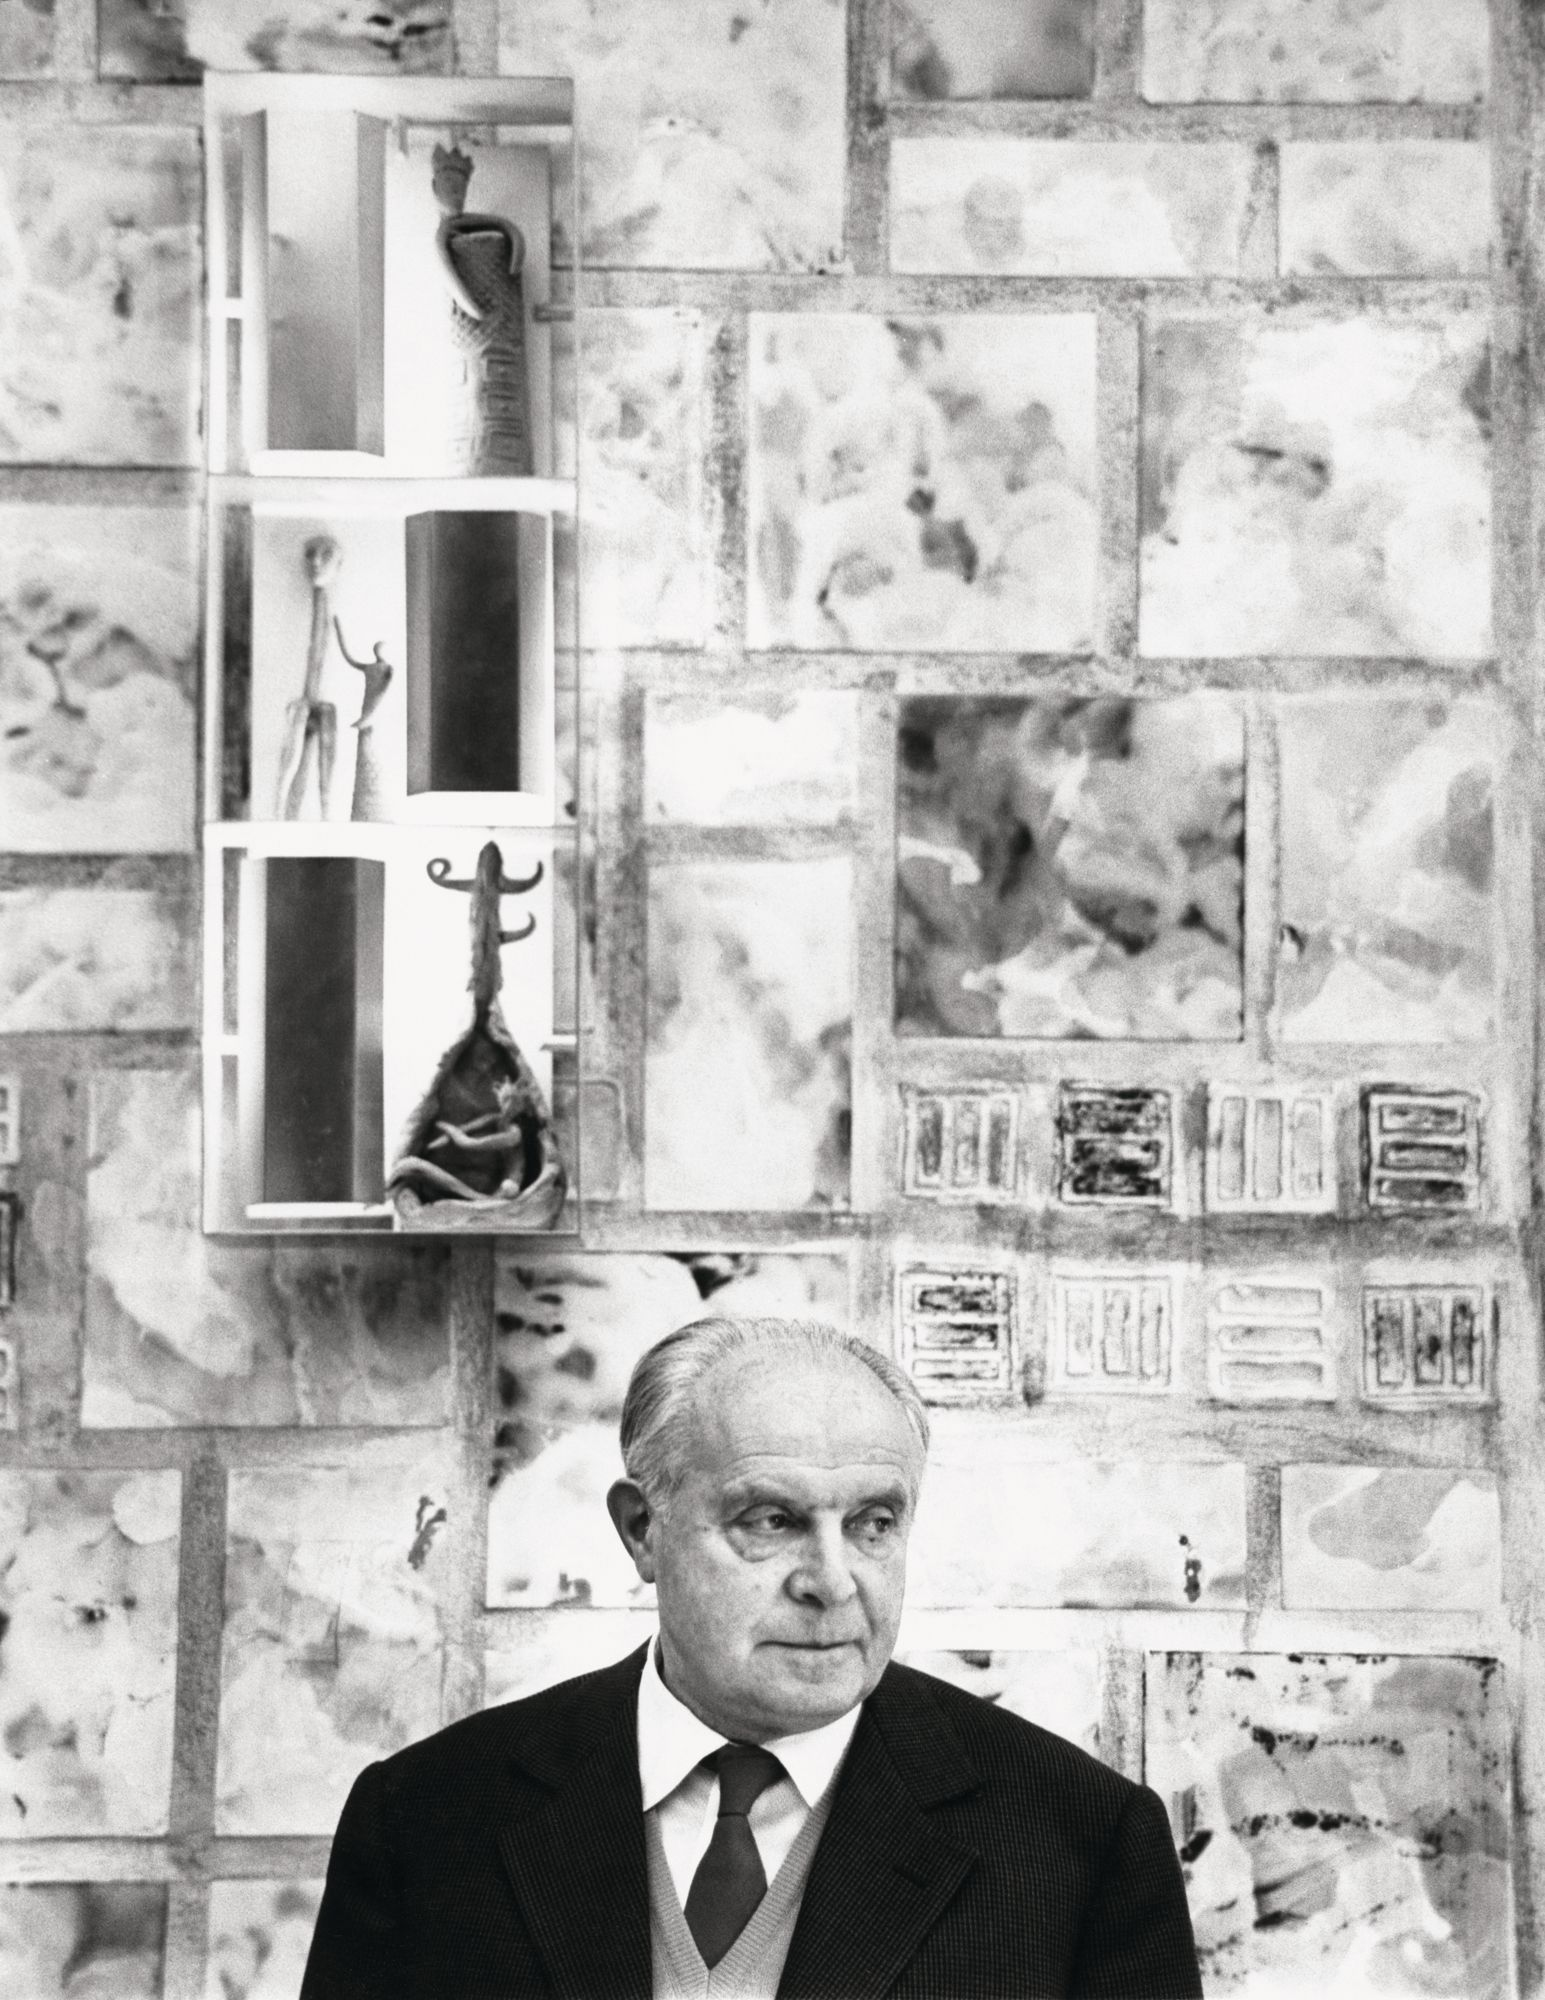 A New Book On Architect Gio Ponti Sheds Light On His Legacy In Asia